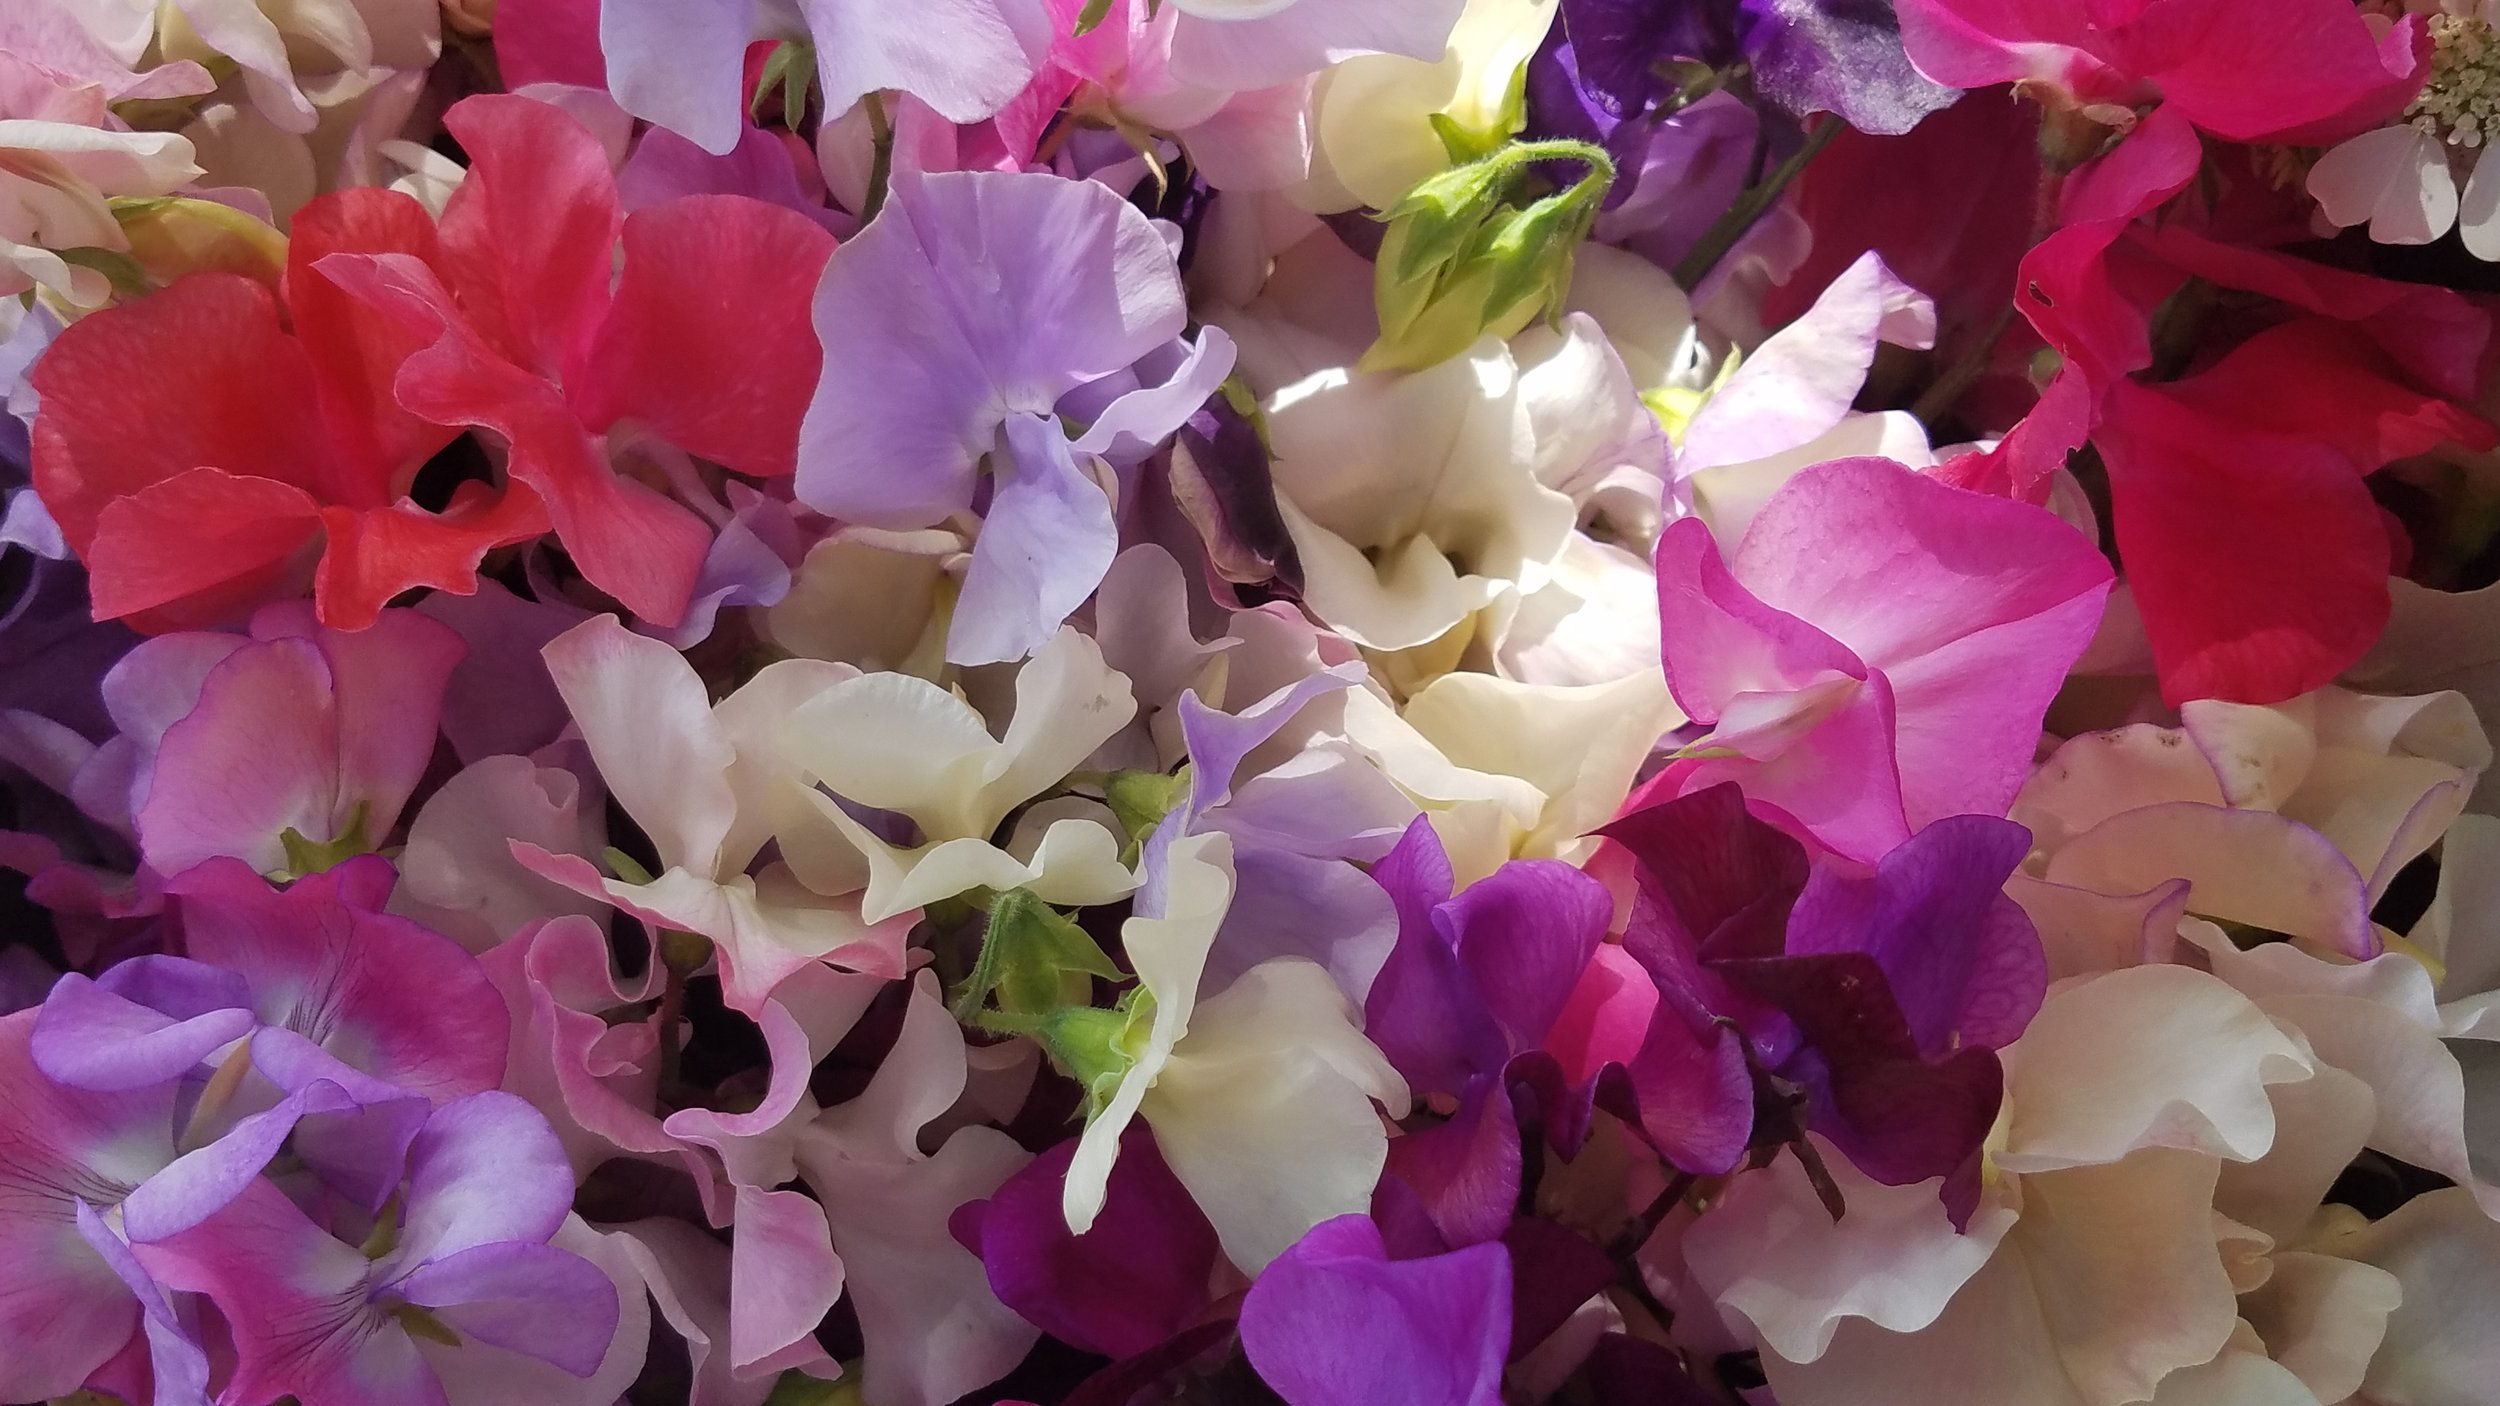 Sweet peas are typically available June through August.